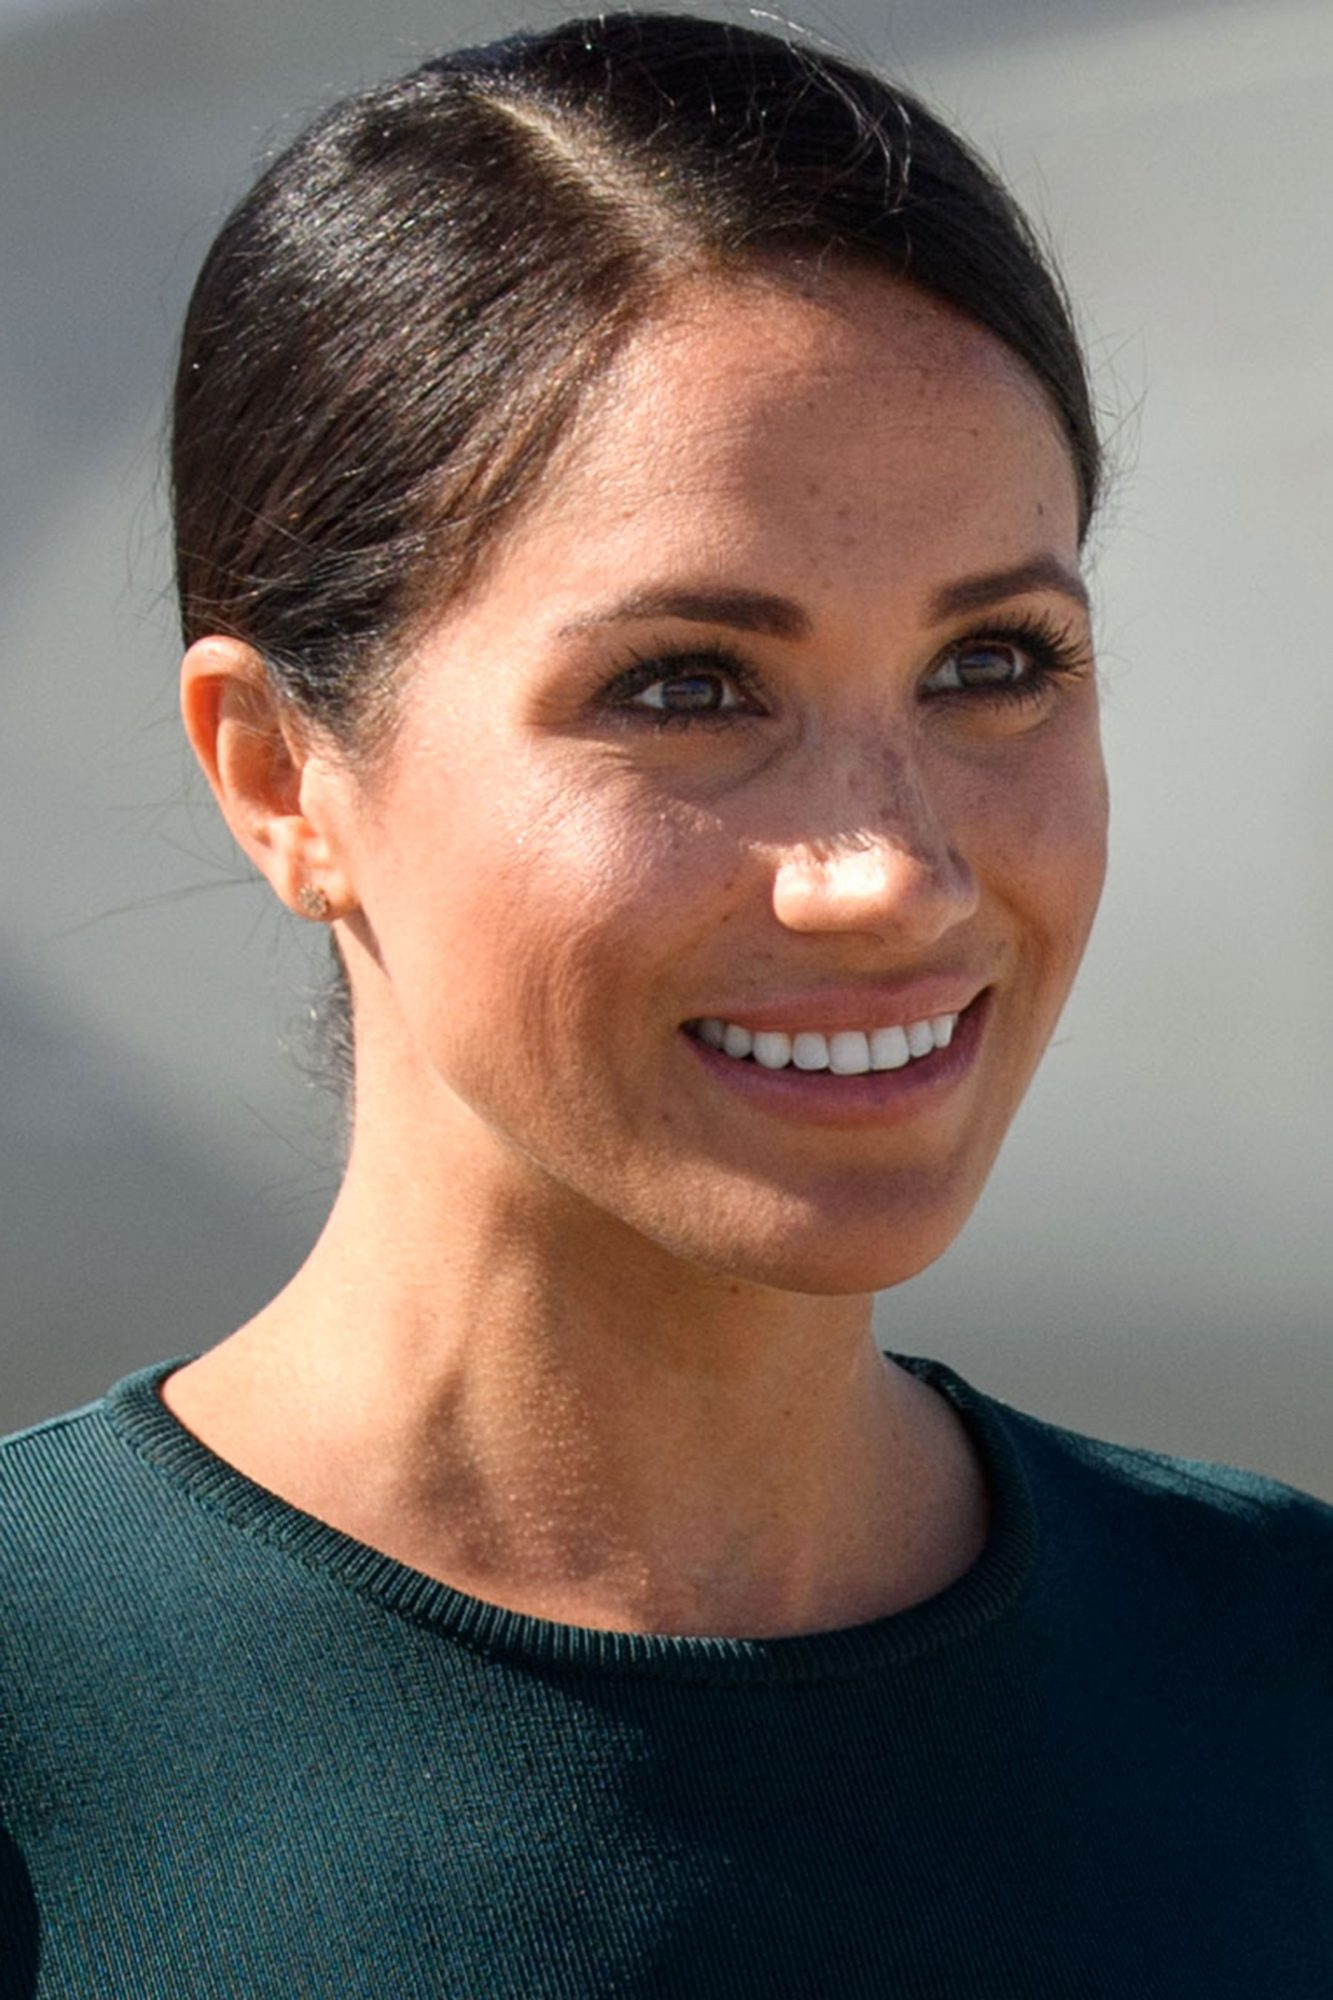 Prince Harry and Meghan Duchess of Sussex visit to Dublin, Ireland - 10 Jul 2018